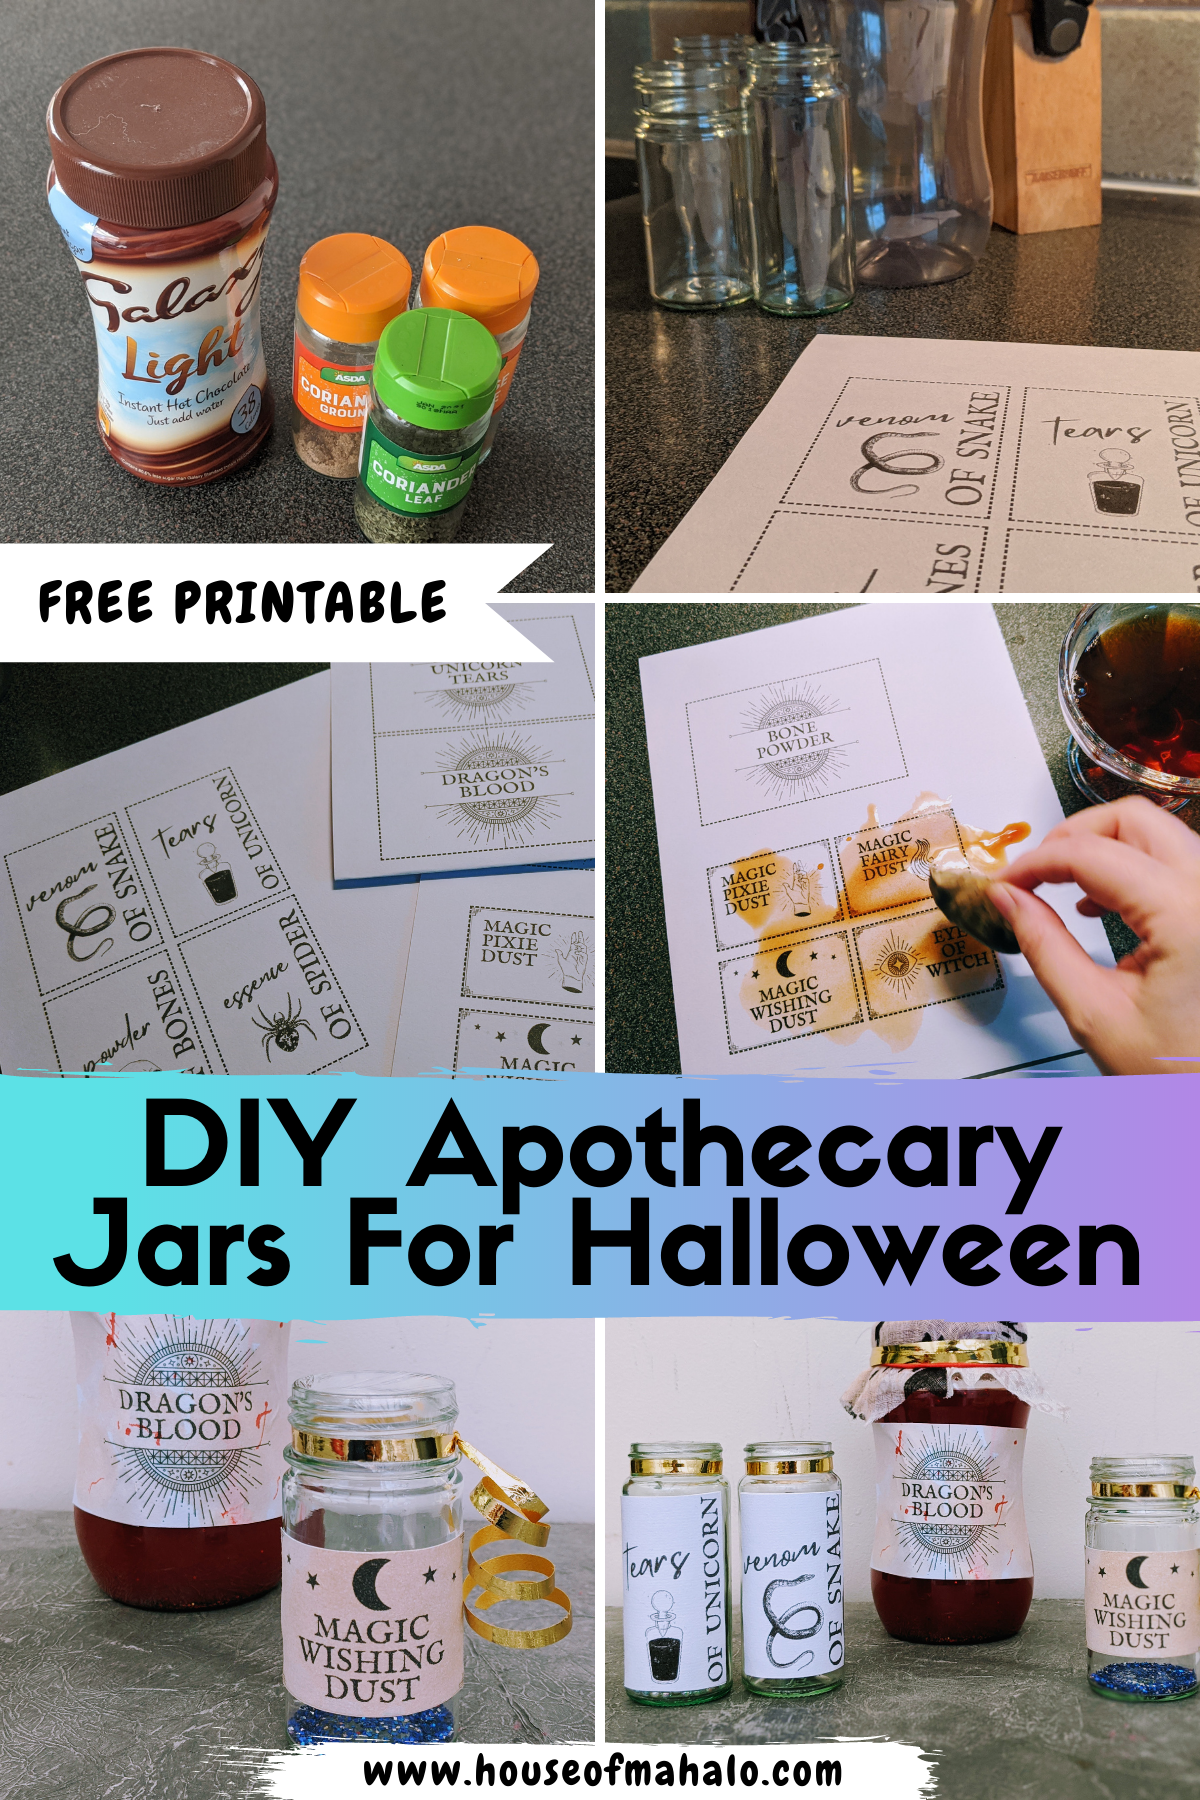 Easy DIY Apothecary Jars For Halloween | Free Printable Halloween Labels